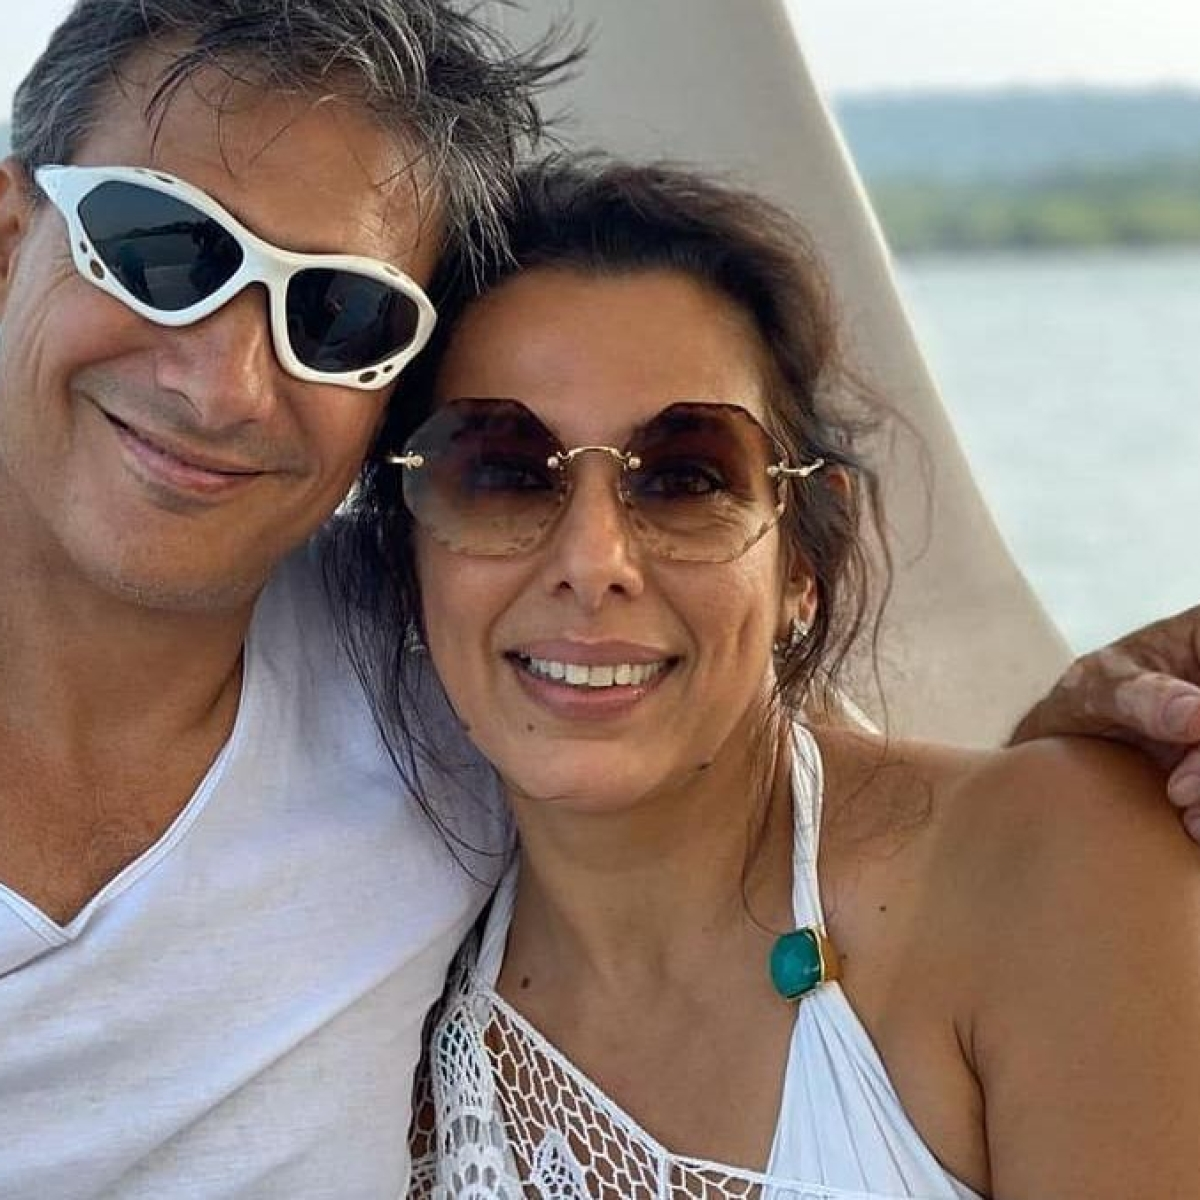 Pooja Bedi hits back at Twitter user who called out her 'privilege' in unmasked Goa beach video